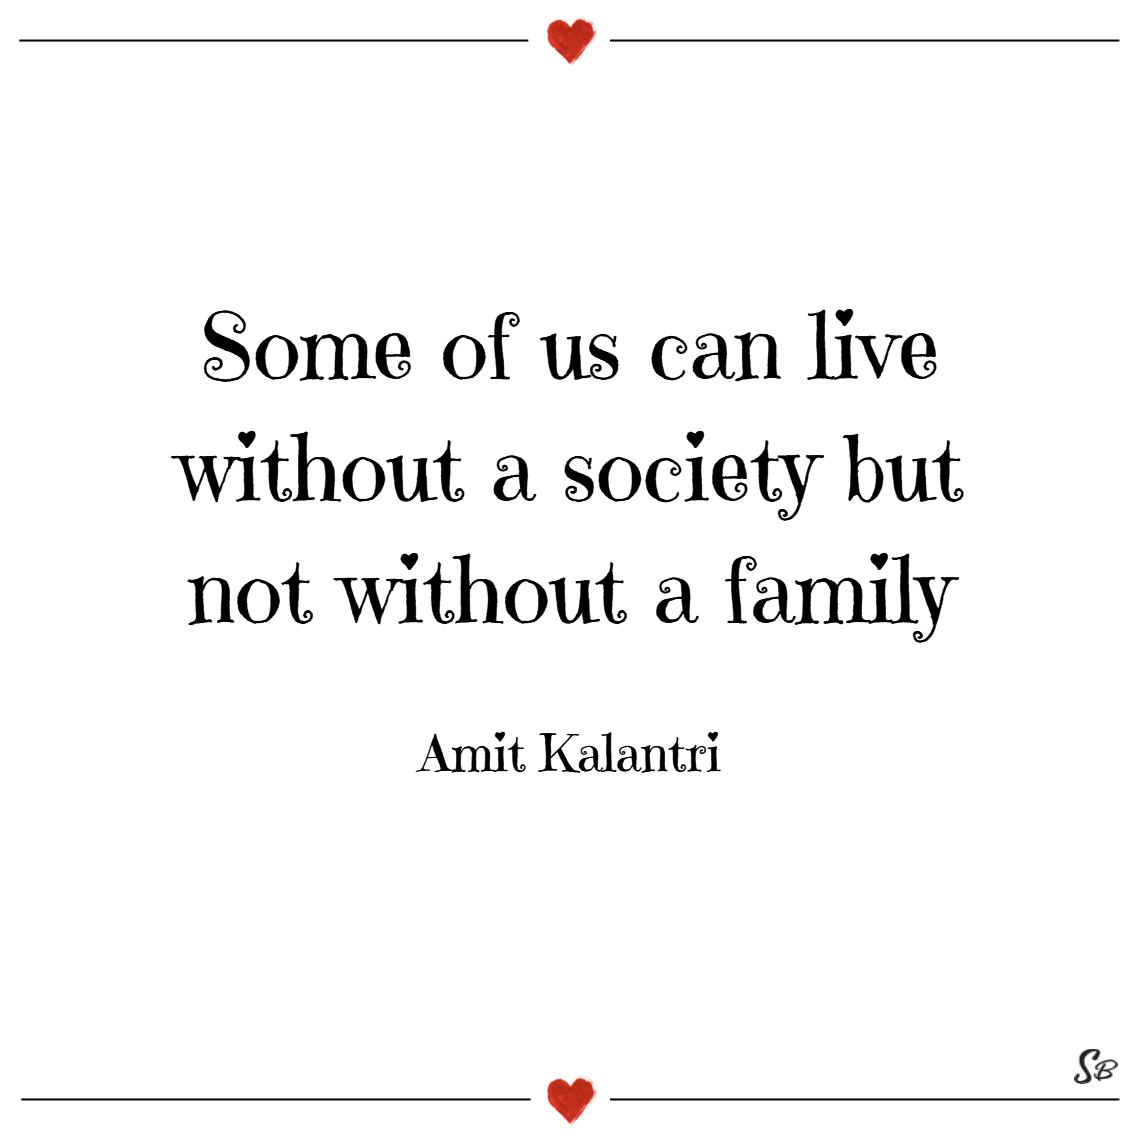 Some of us can live without a society but not without a family. – amit kalantri